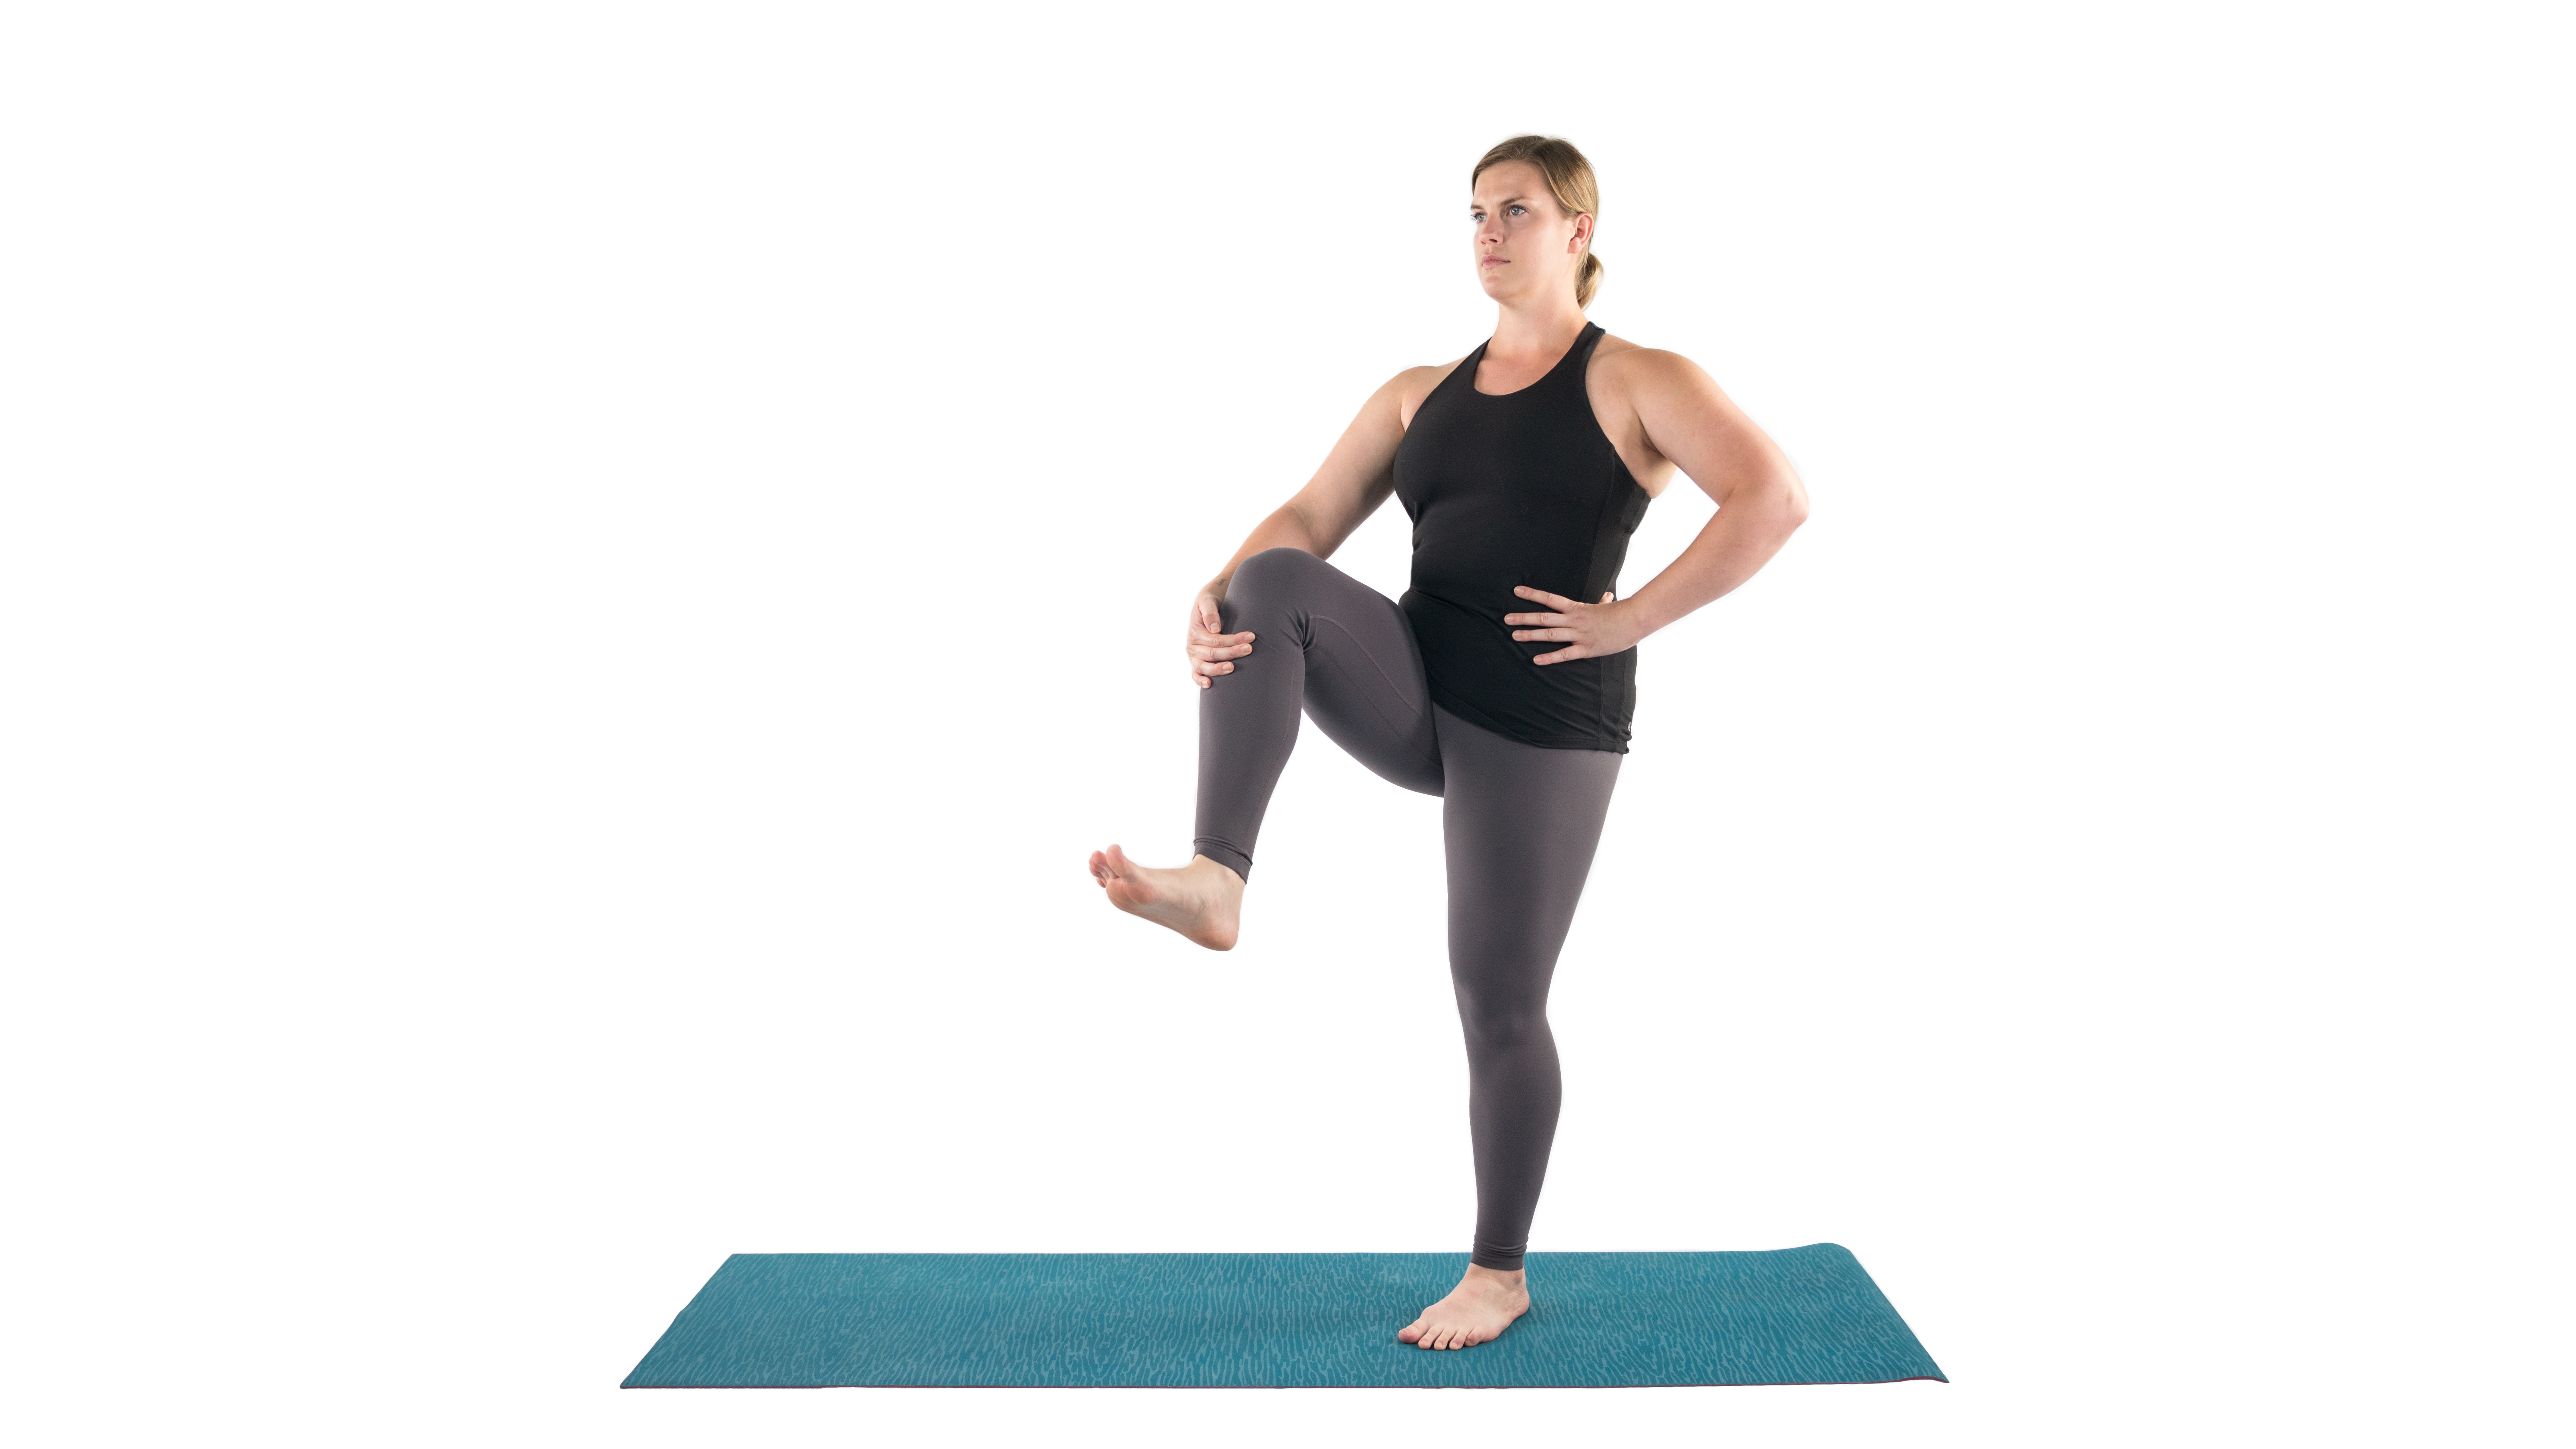 Woman in a simple standing balance yoga pose to stretch muscles in preparation for Dancer Pose